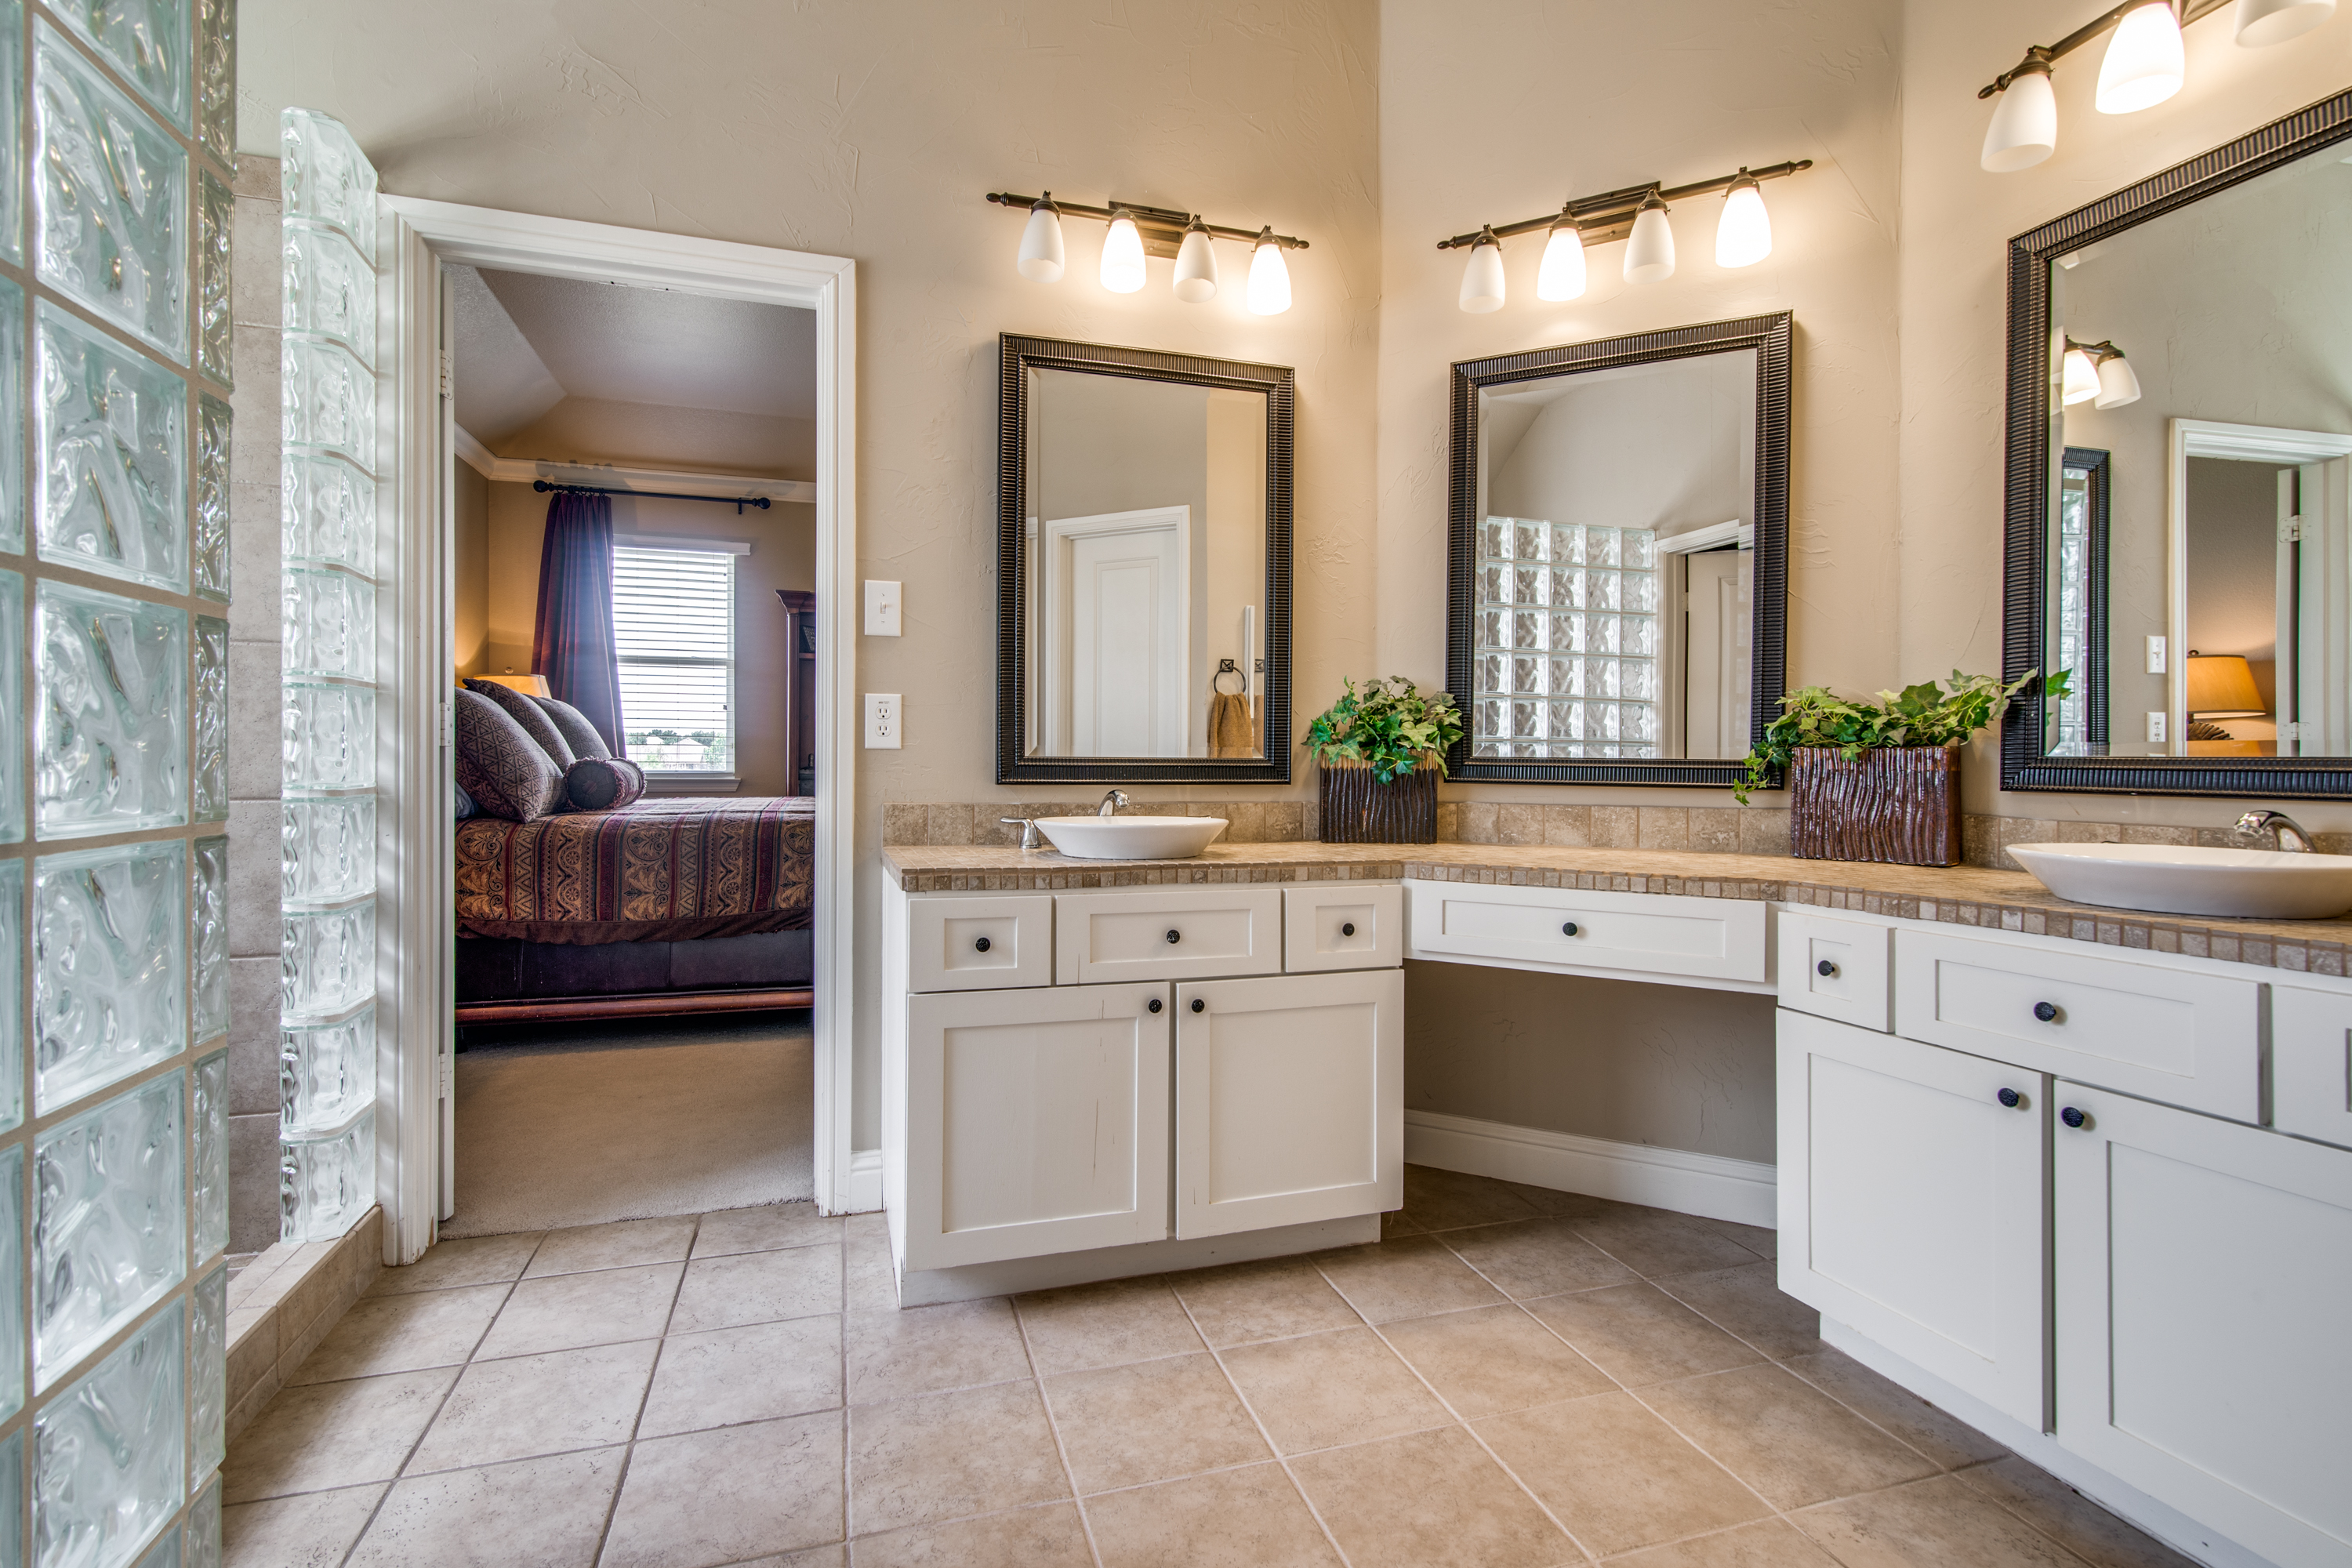 Dual sink vanities with a sitting area, walk in closet & separate standing shower.